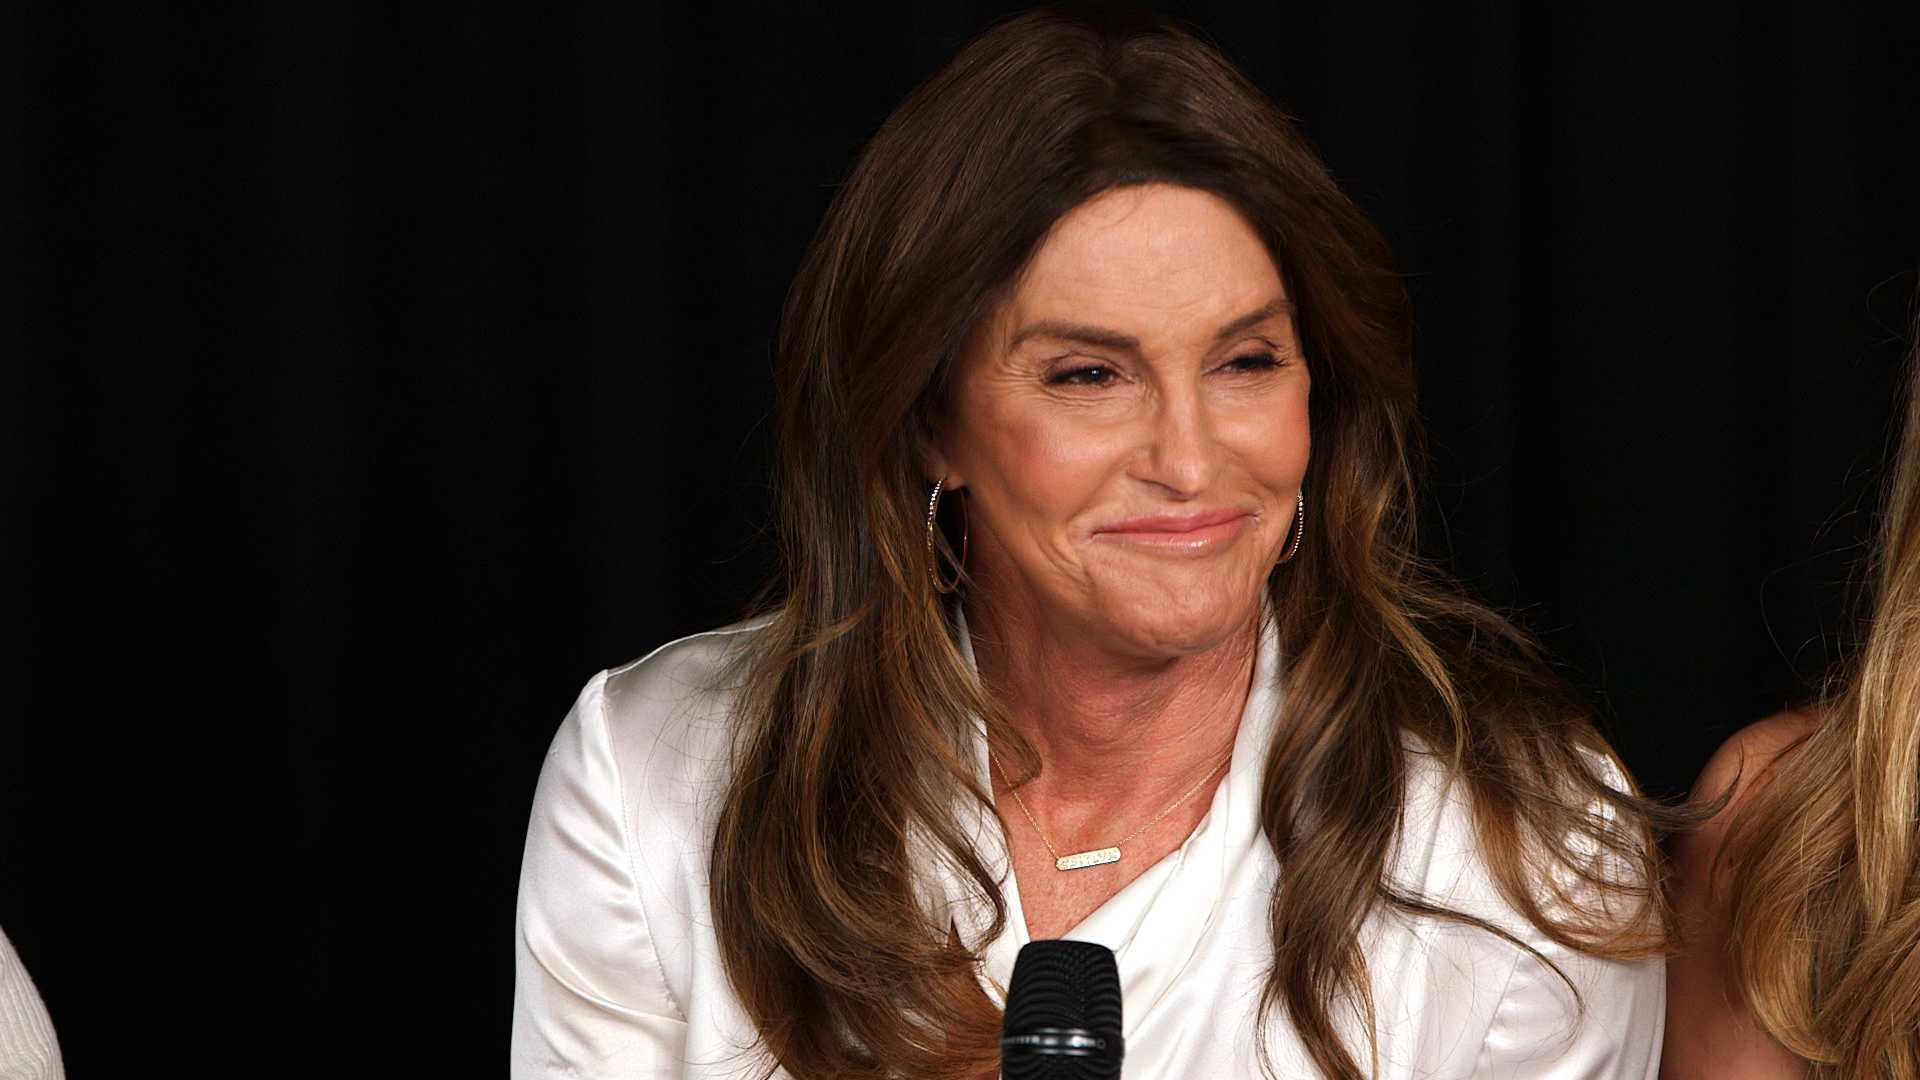 Caitlyn Jenner Responds to Posing With Hillary Clinton